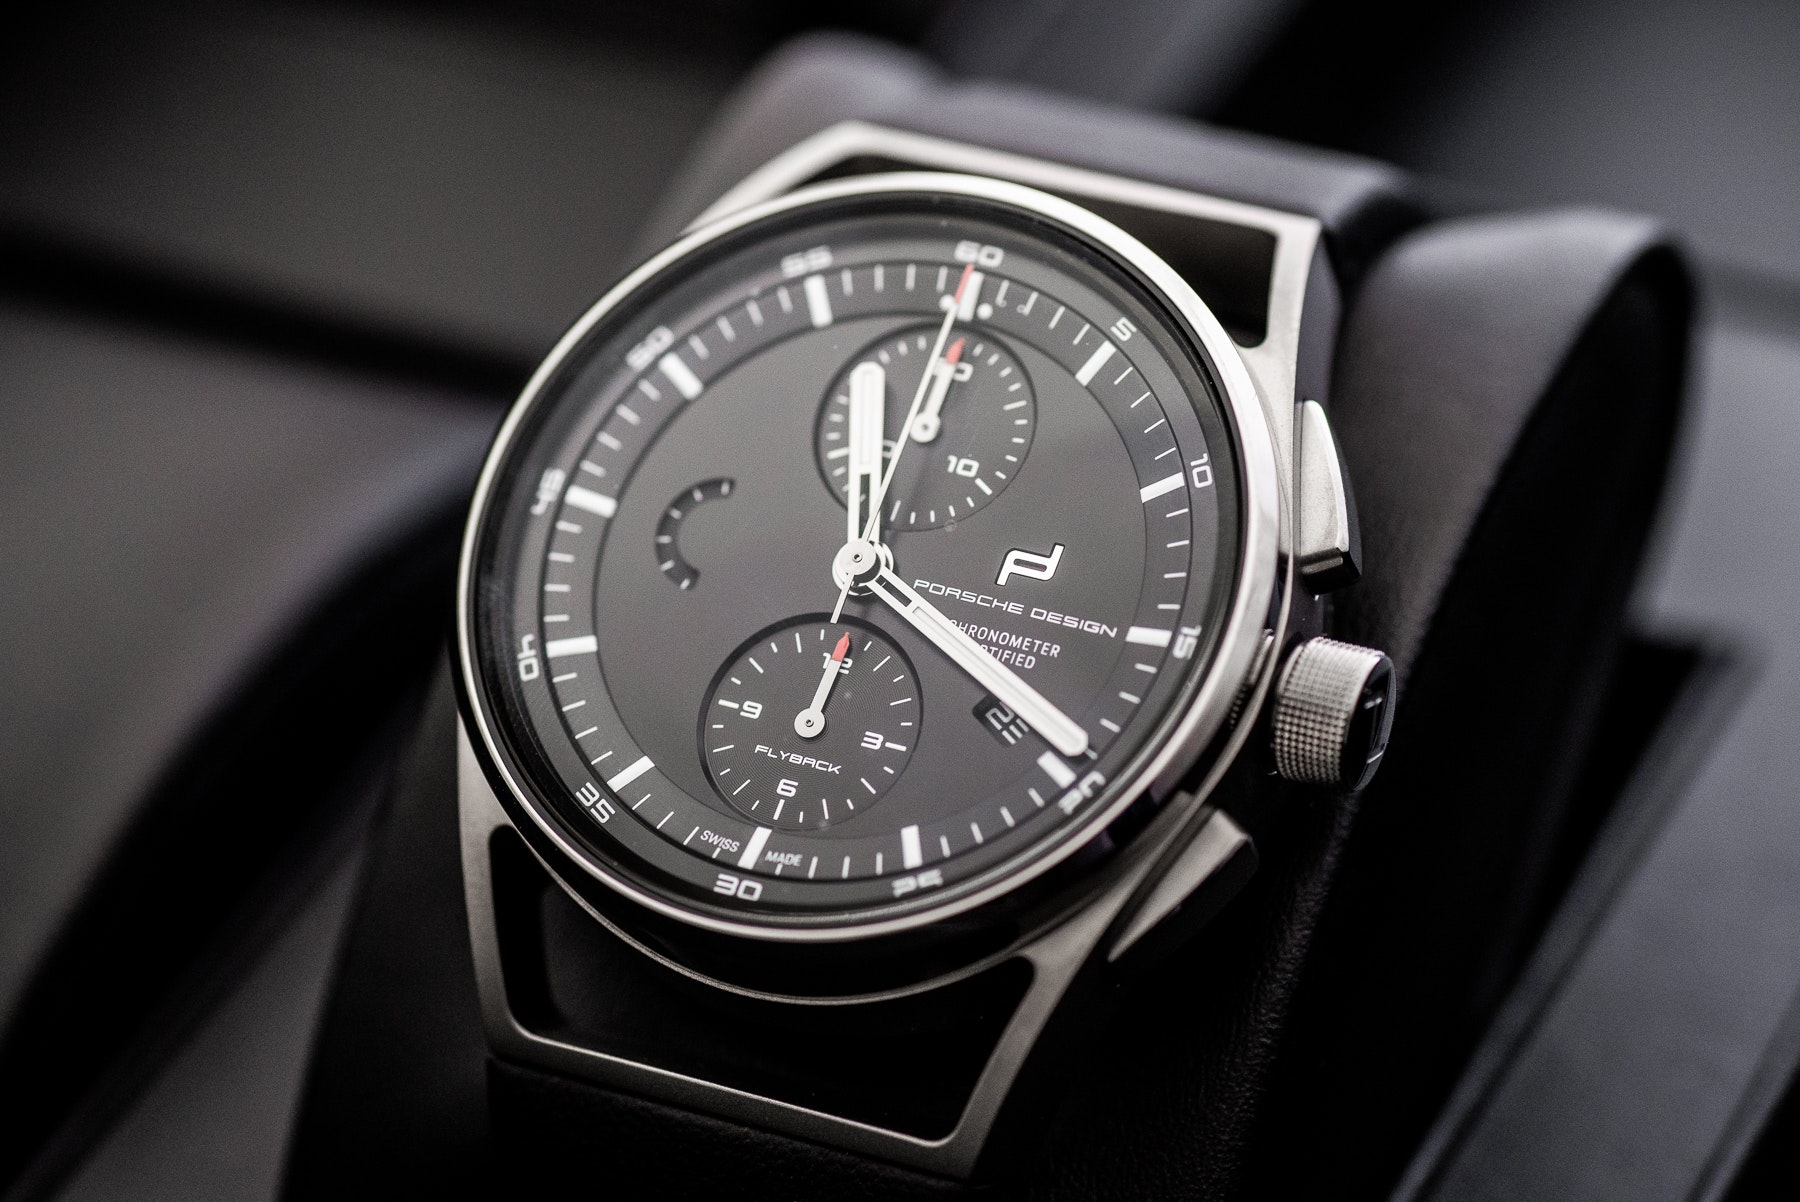 Baselworld 2019: Porsche Design with versatile innovations